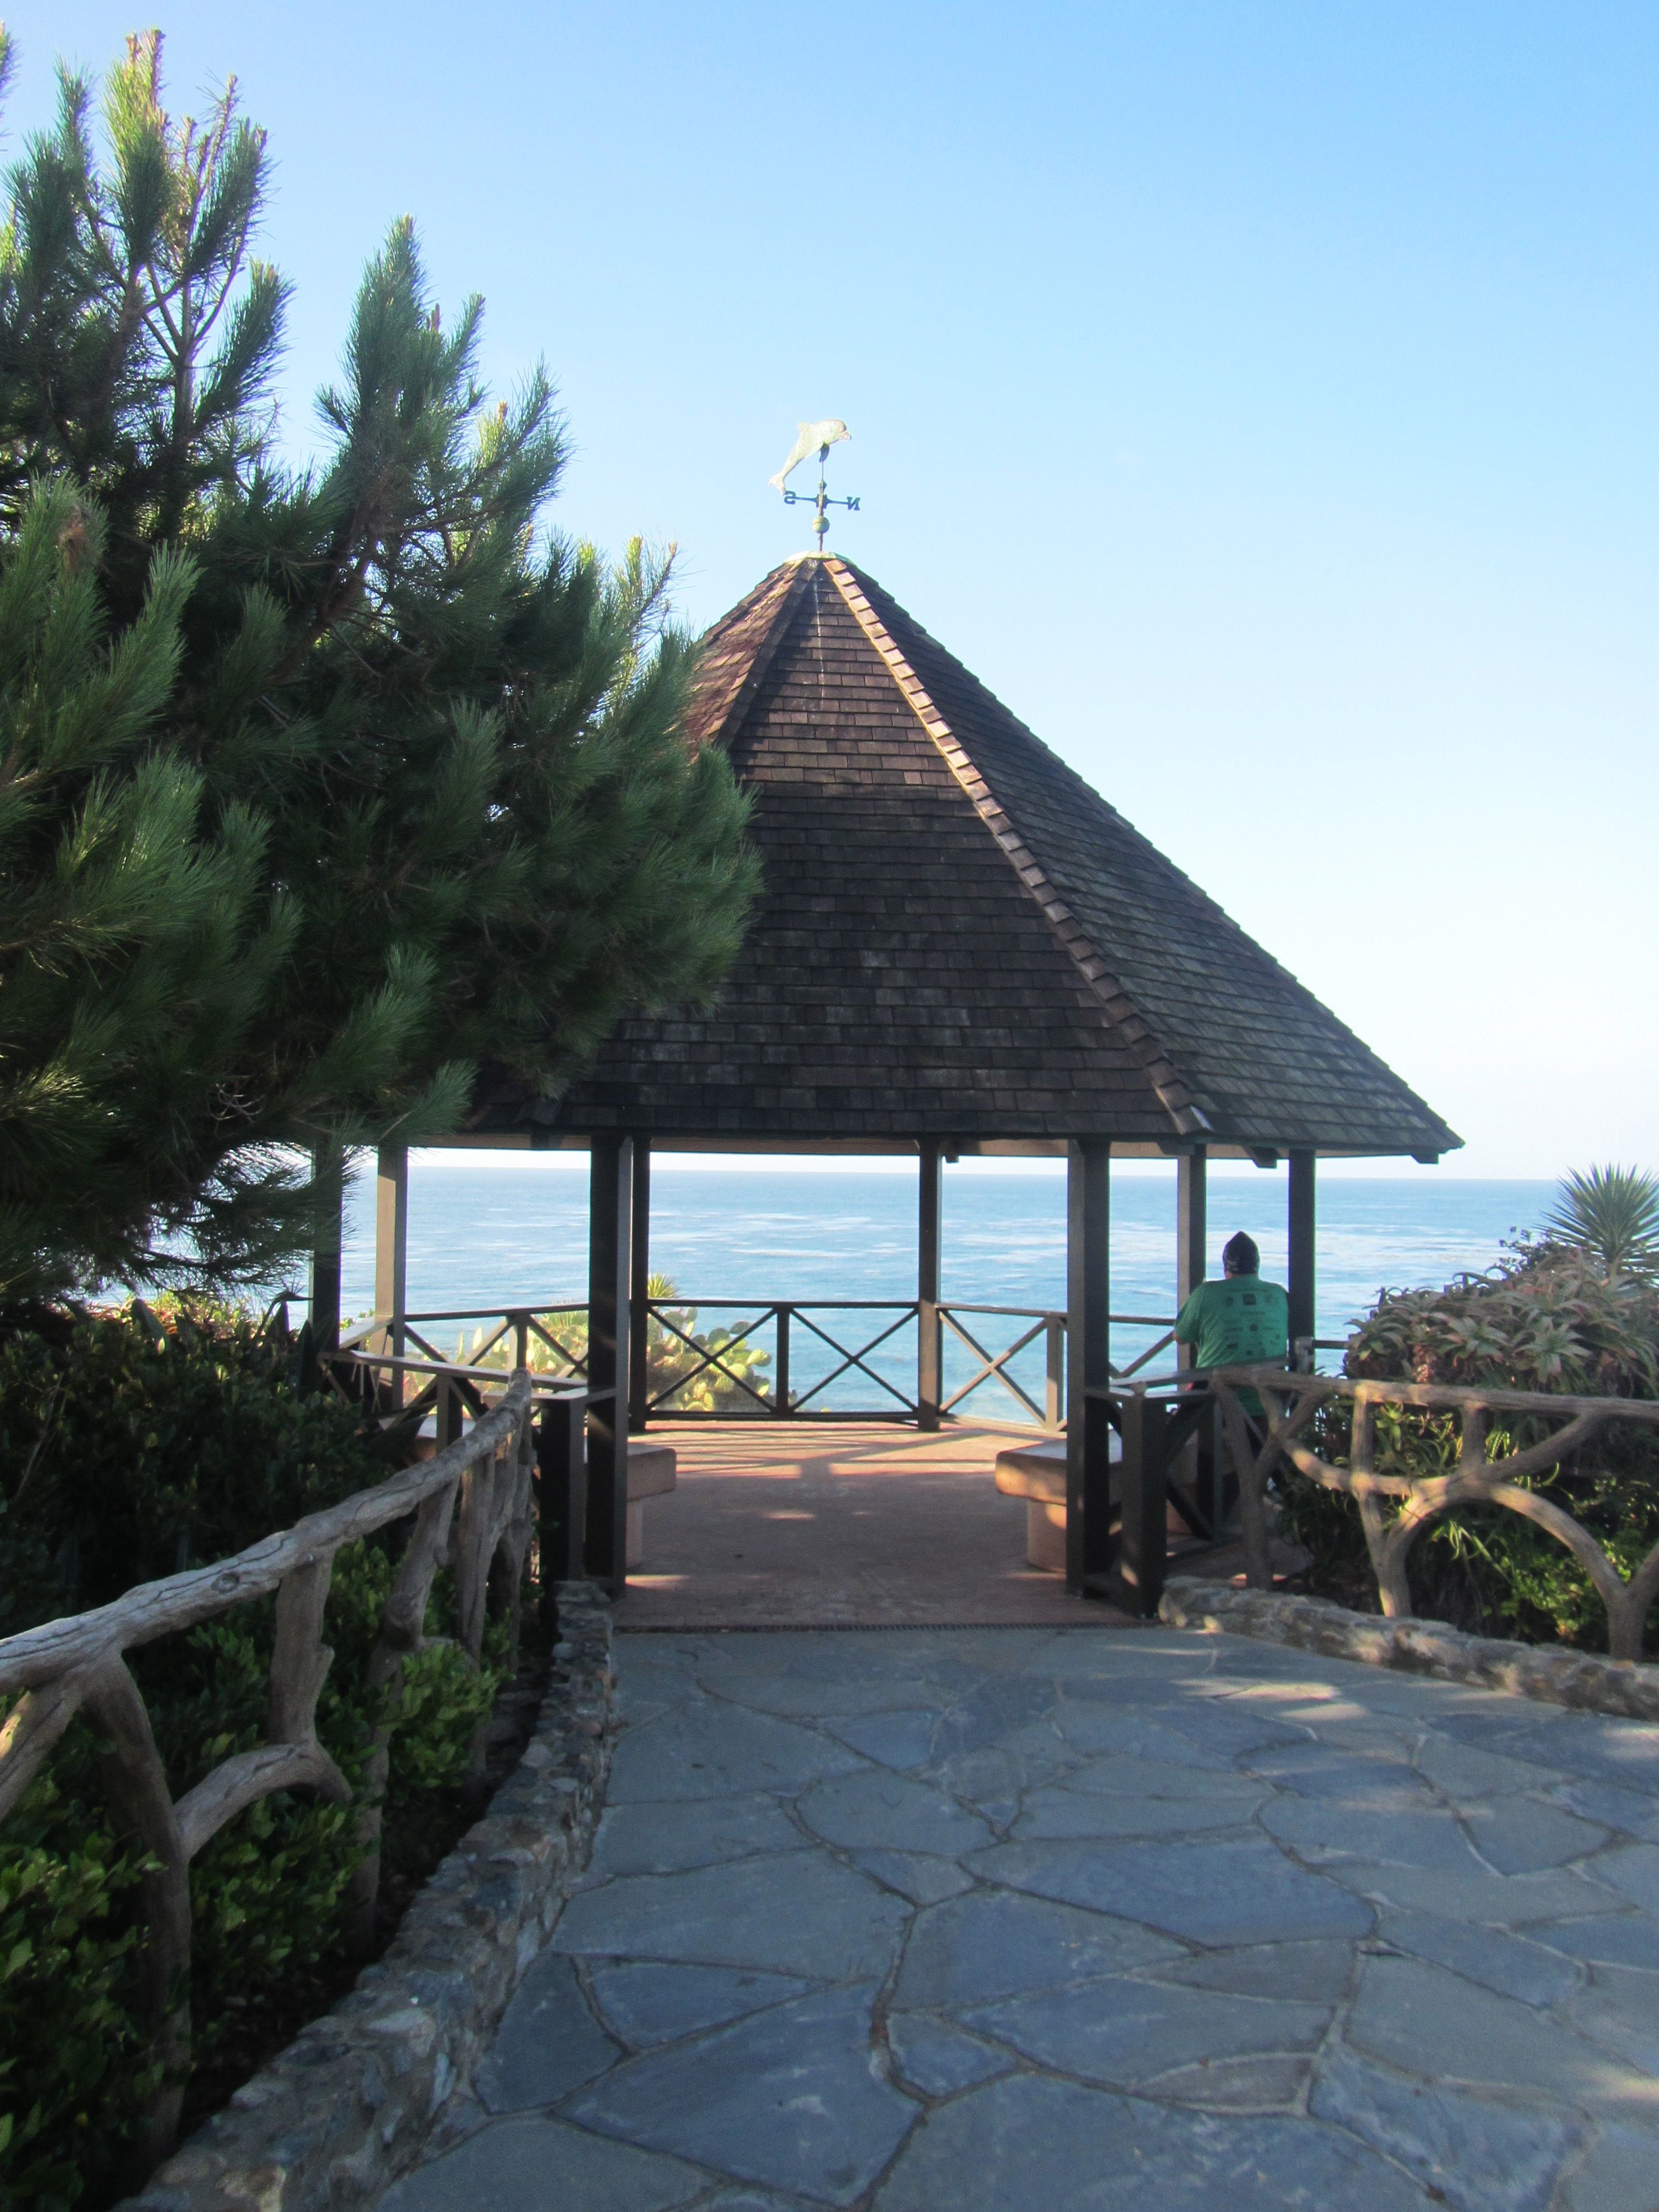 Heisler Park Gazebo Laguna Beach Just Over 3 Months And I Get To Marry My Best Friend Here